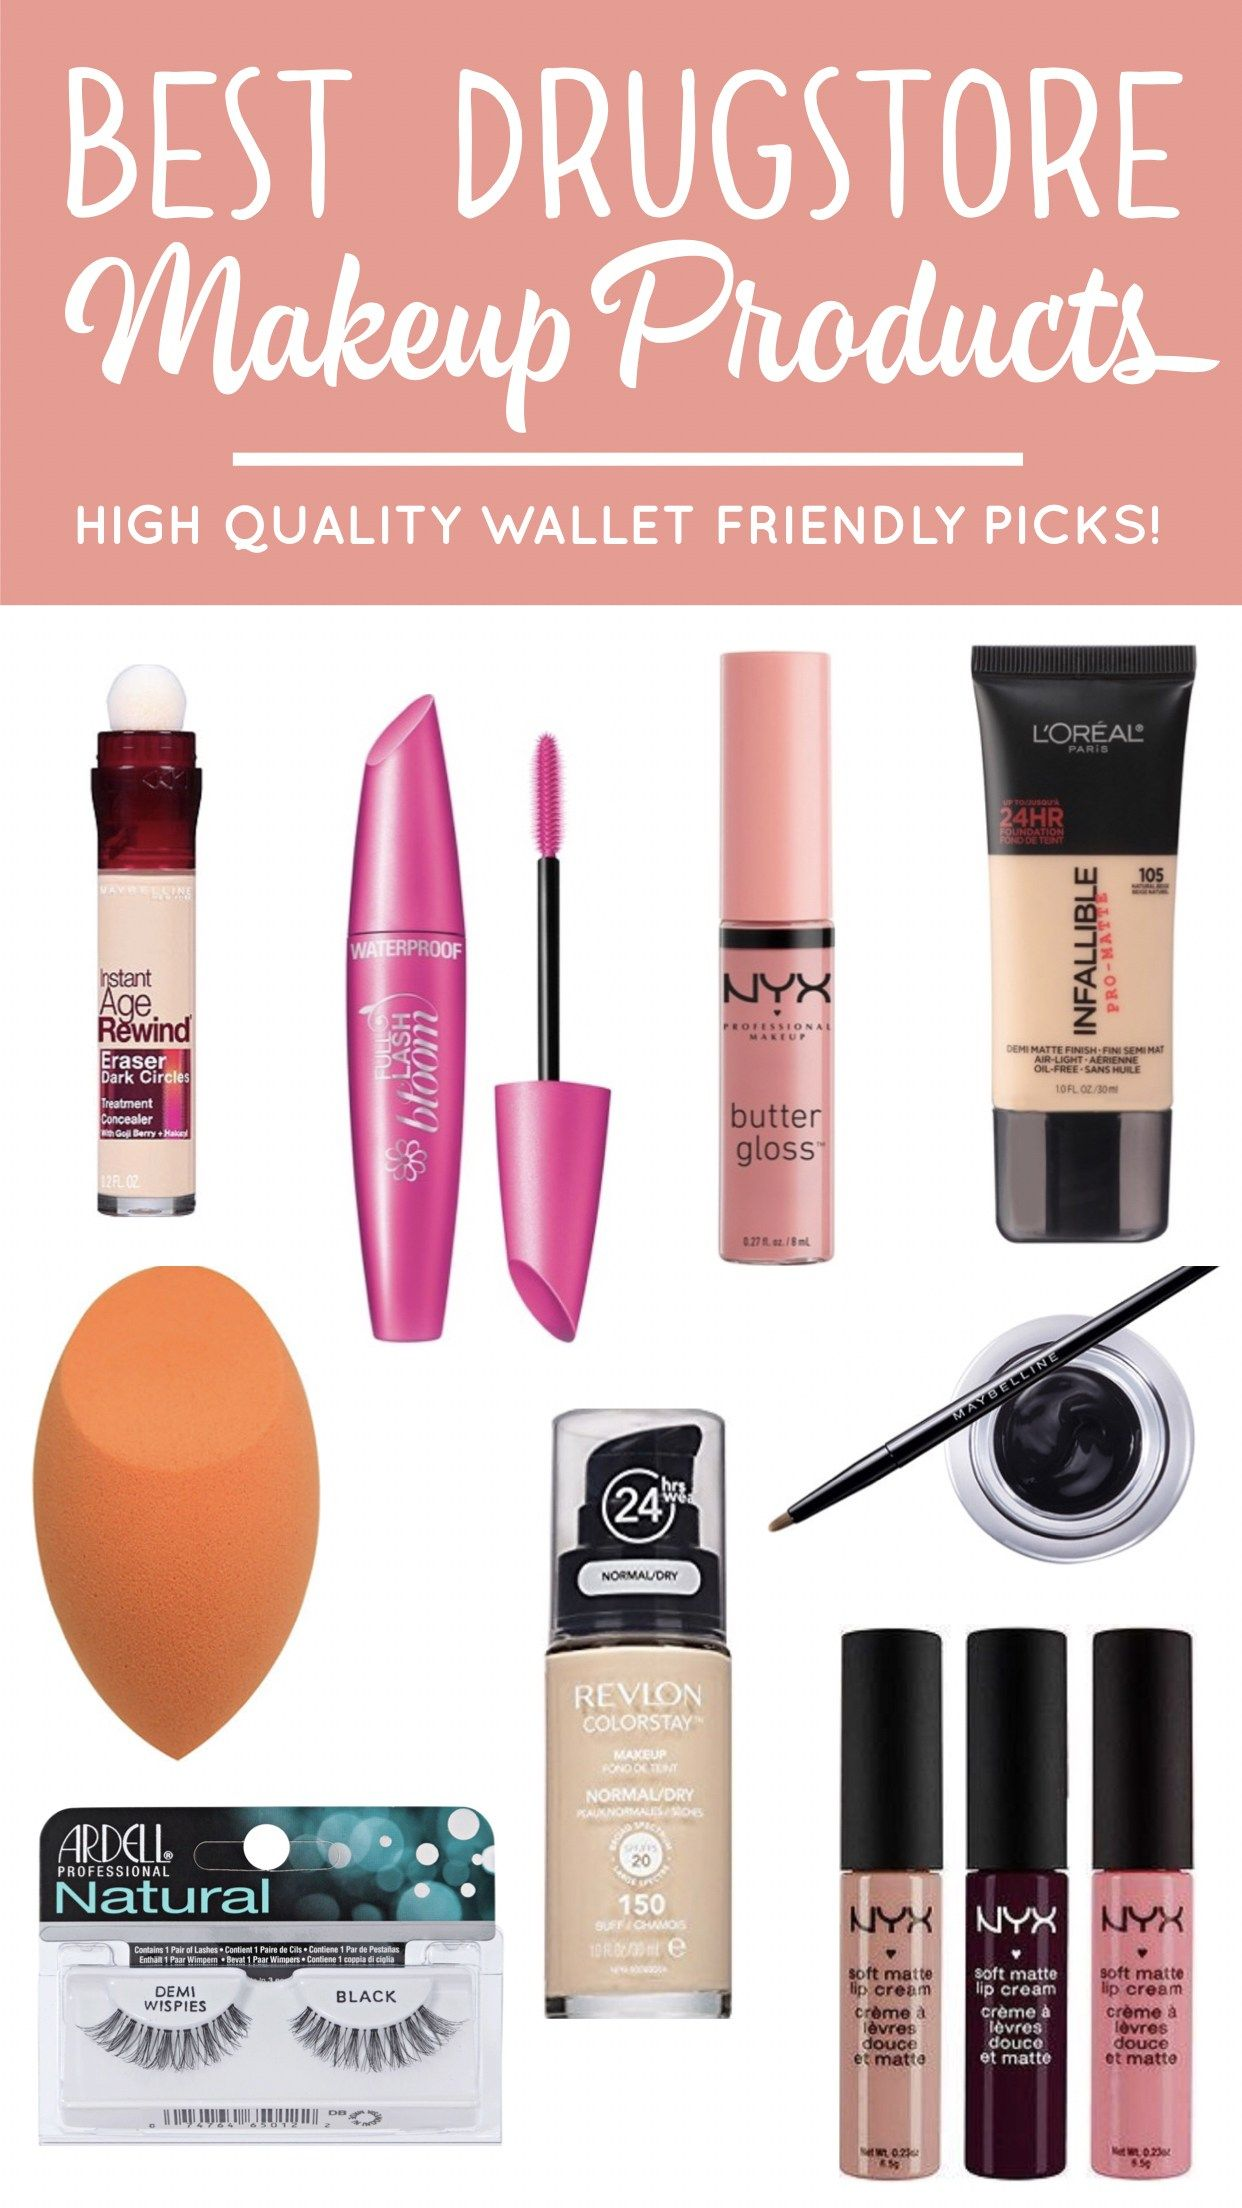 The Best Drugstore Makeup Products Must Have Foundation Mascara Concealer Lip Gloss That Won T Best Drugstore Makeup Drugstore Makeup Best Makeup Products